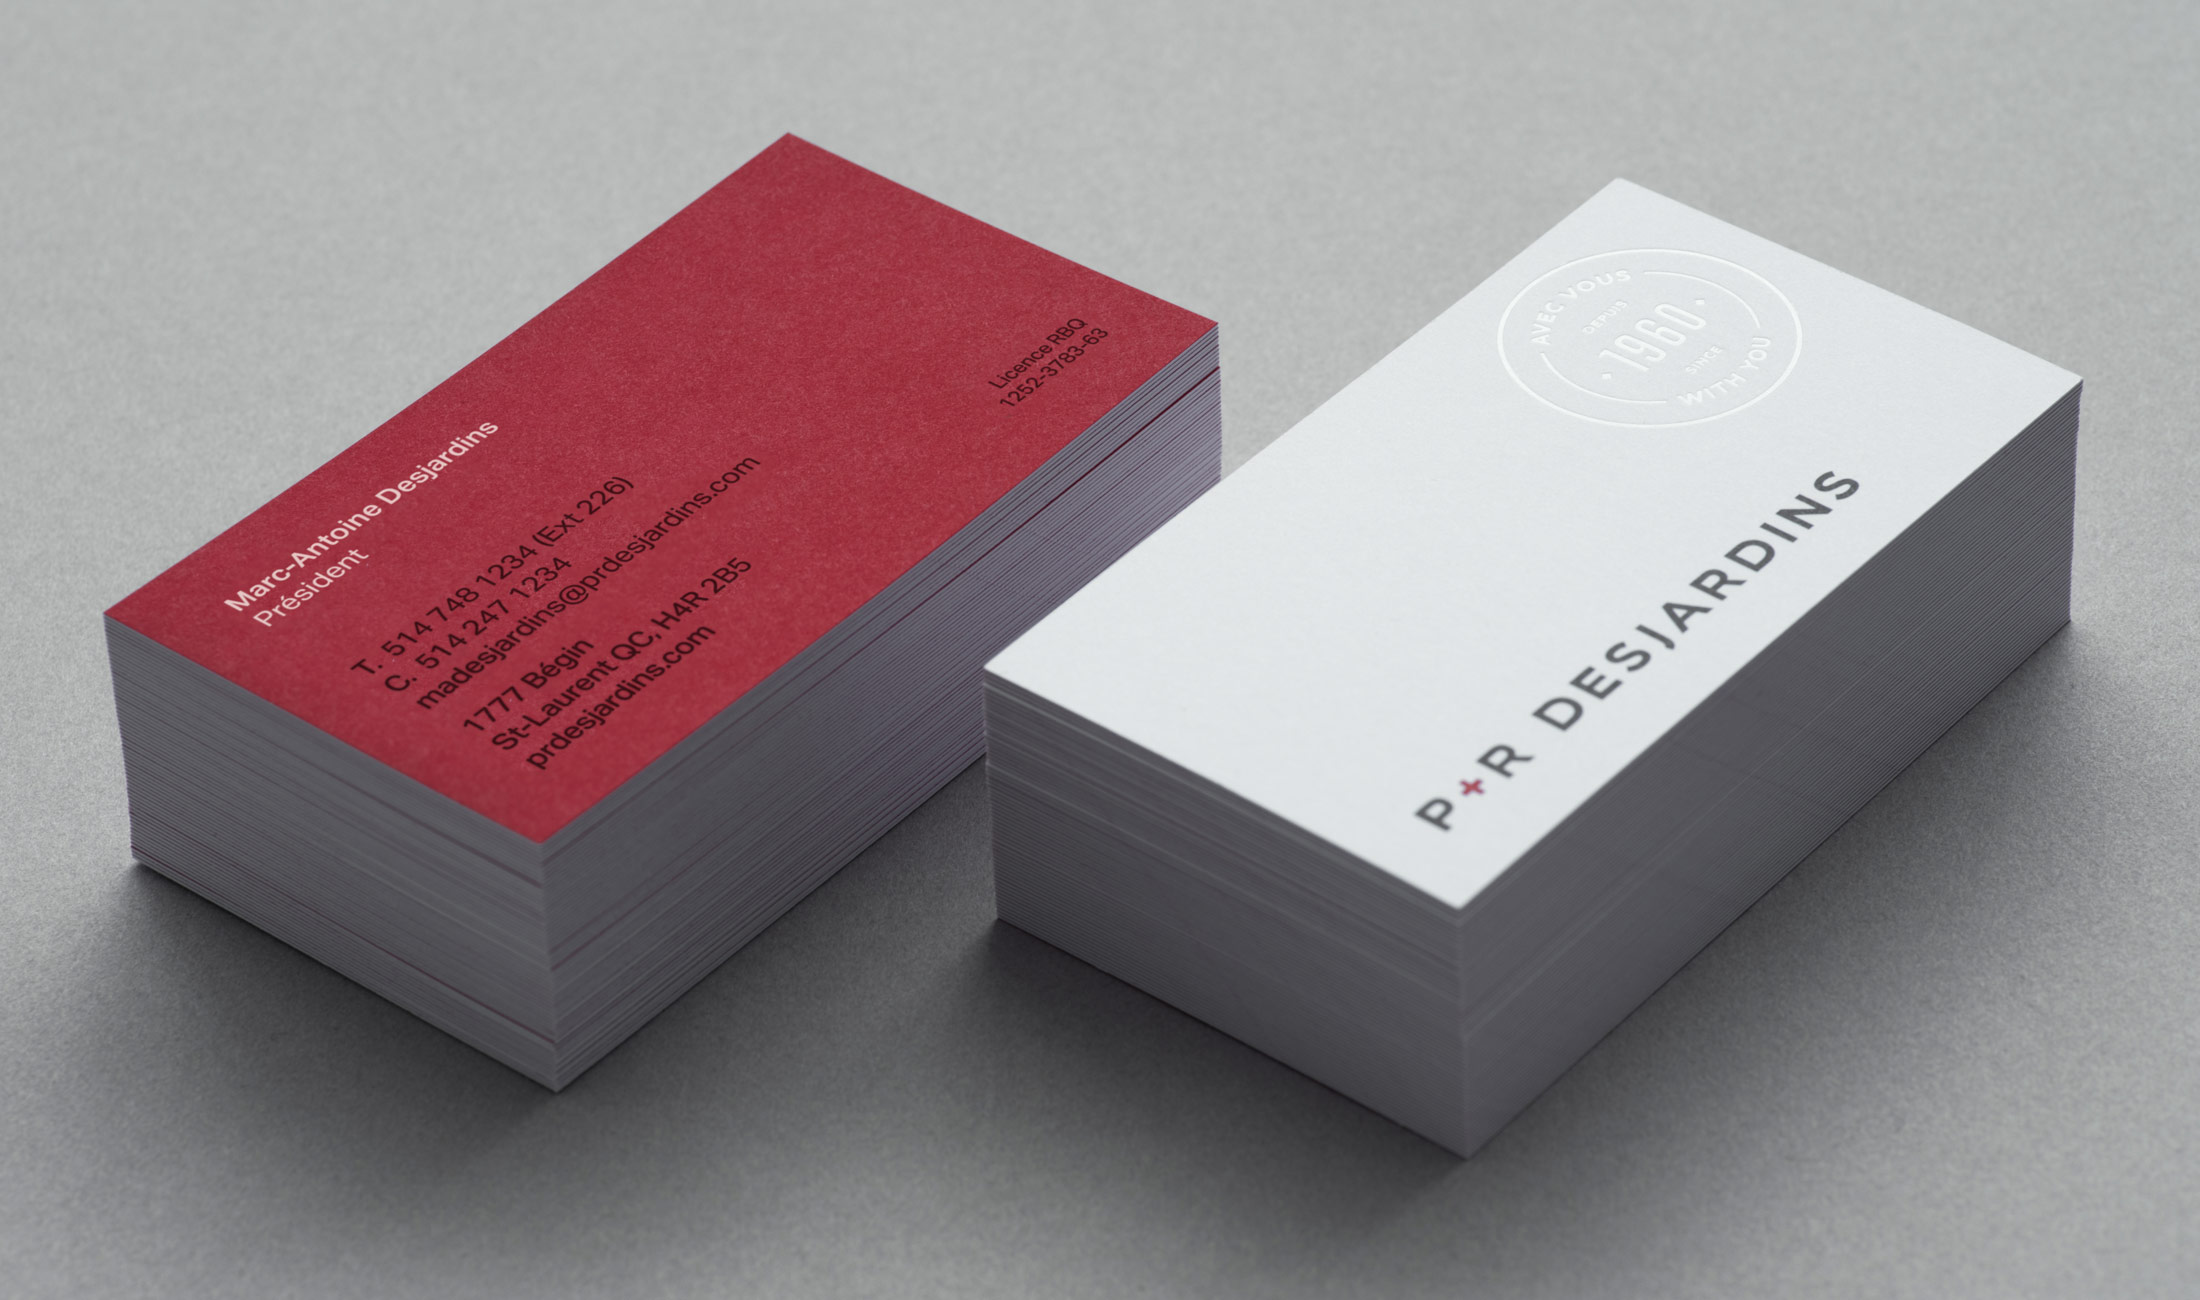 Business cards for P&R Desjardins